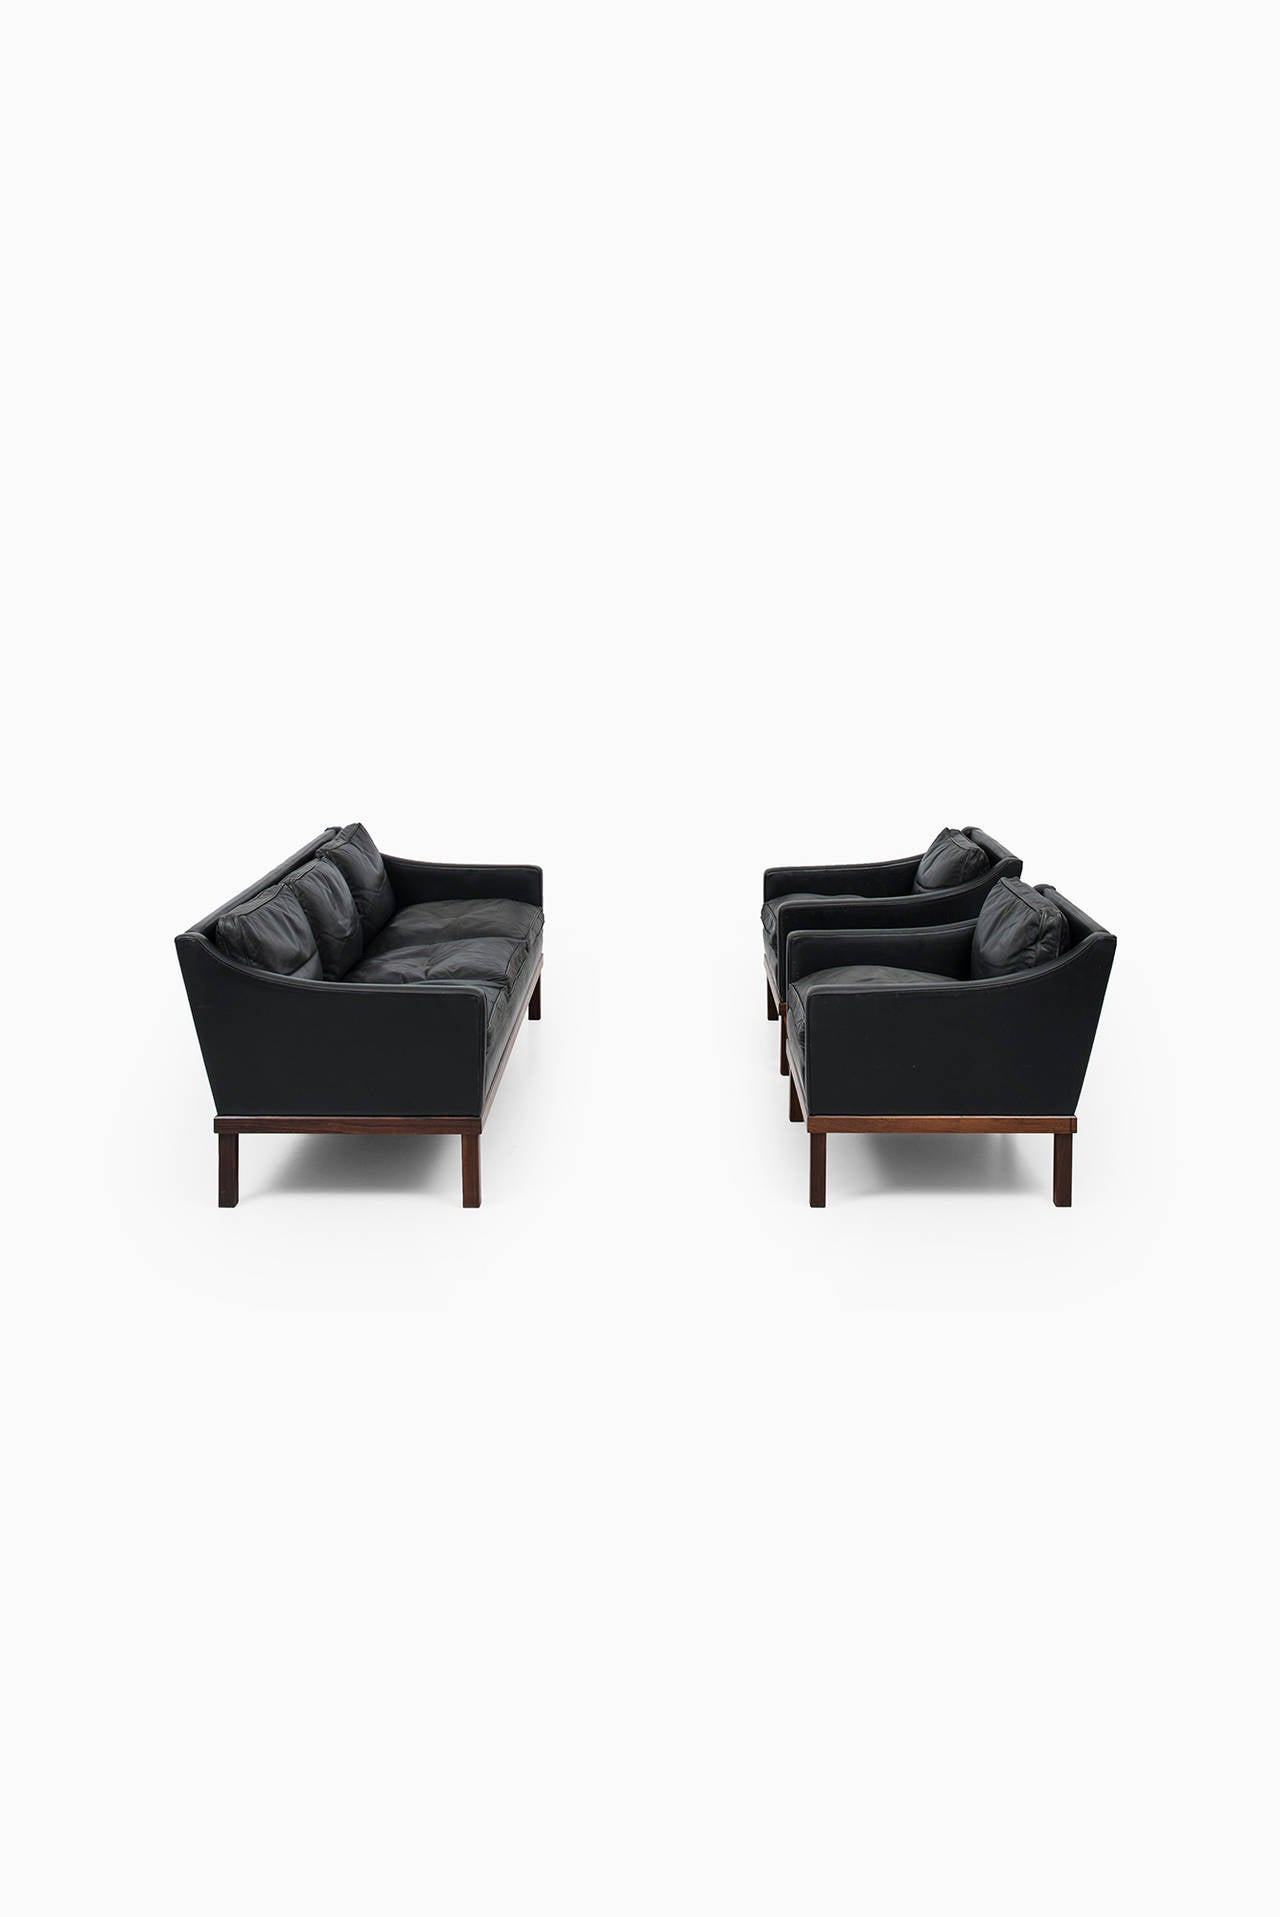 Ib Kofod-Larsen leather sofa by OPE in Sweden For Sale 3